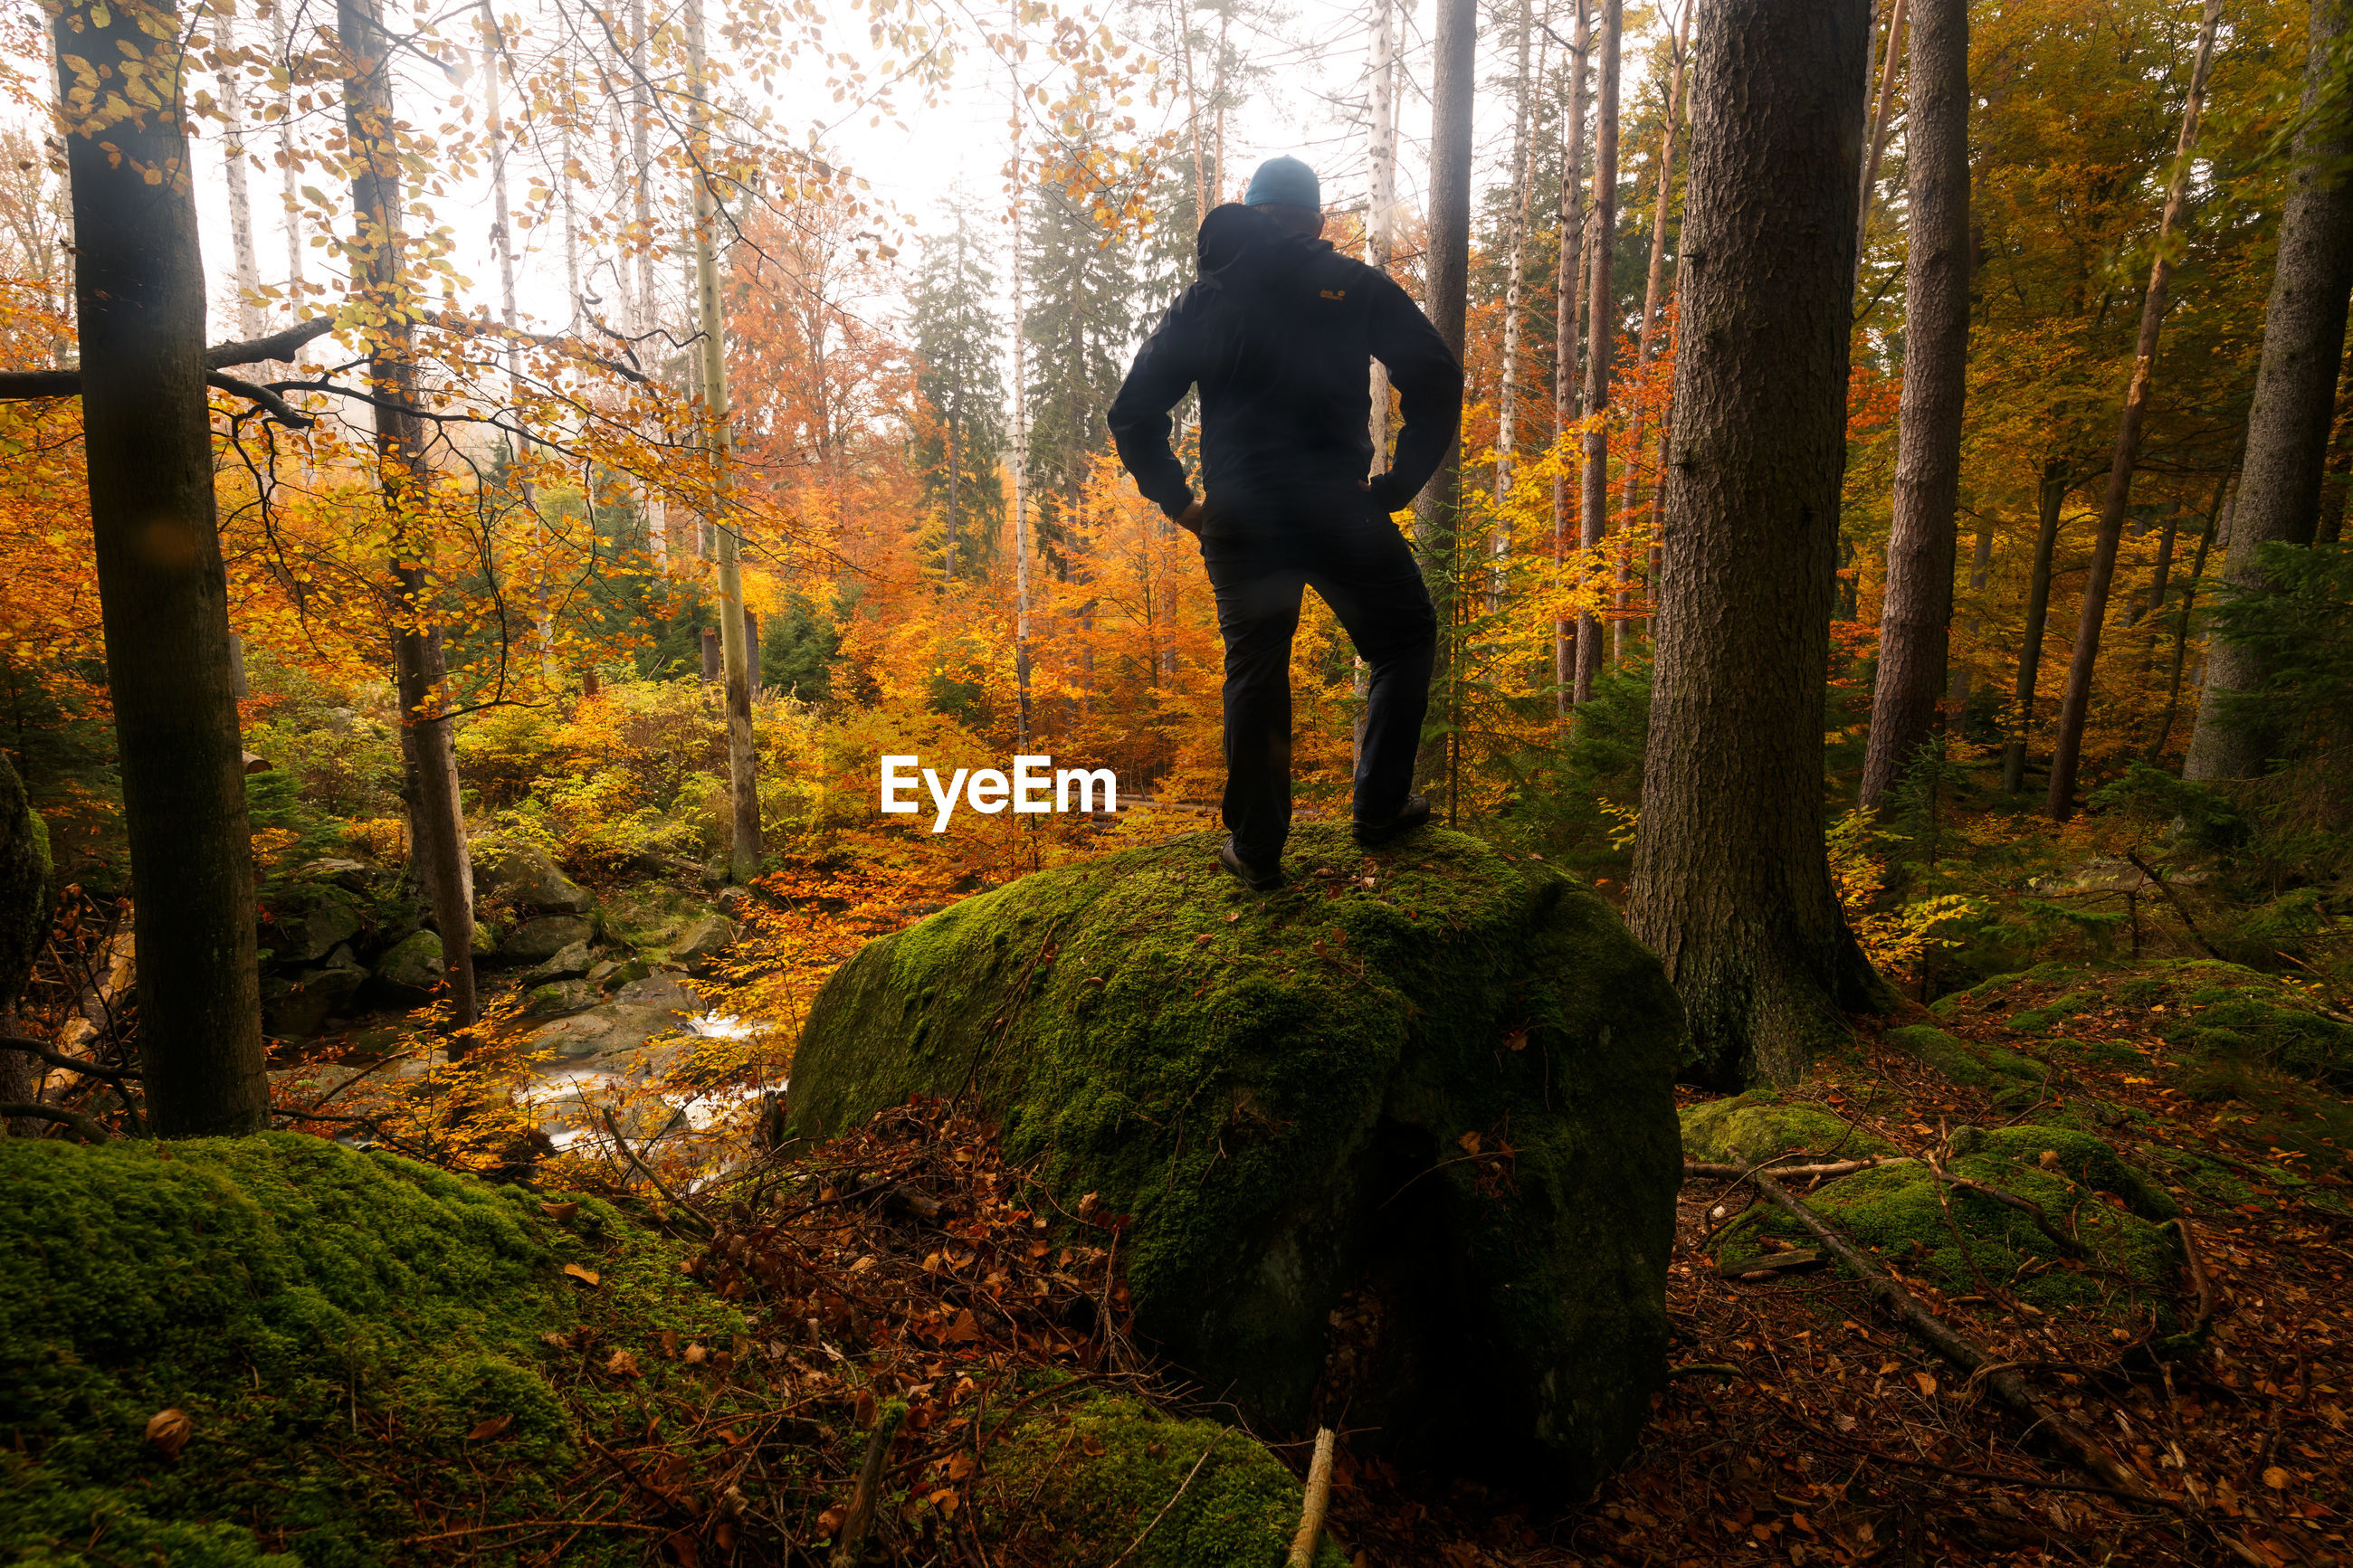 Rear view of man standing on rock amidst trees in forest